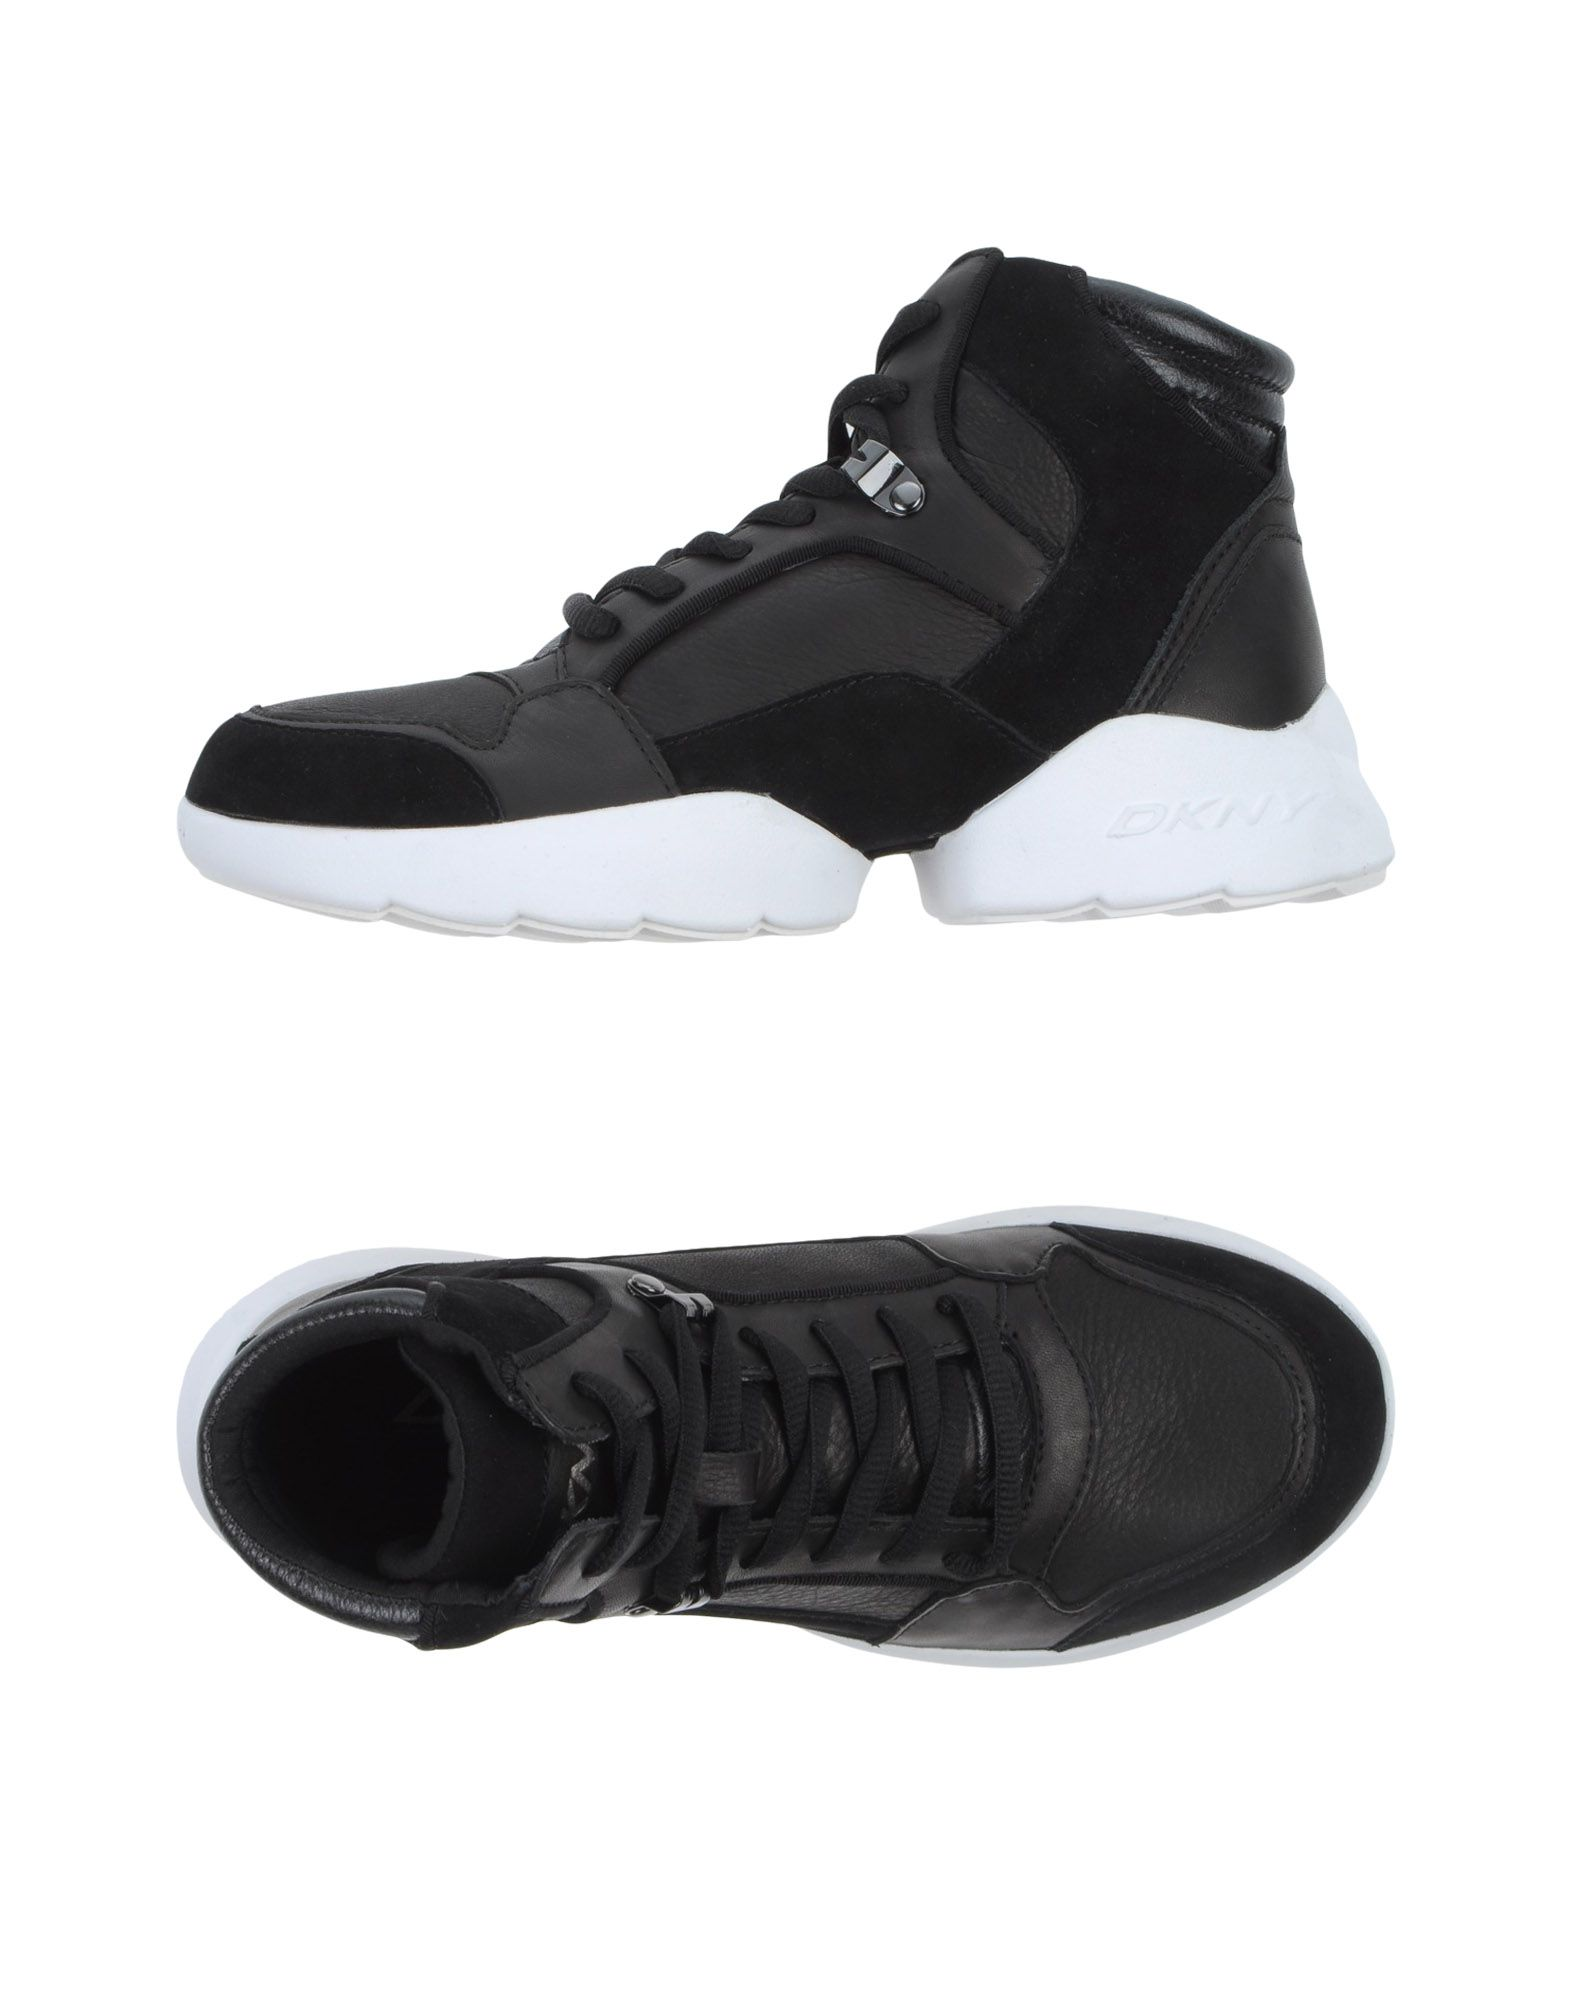 Sneakers Dkny Donna - Acquista online su